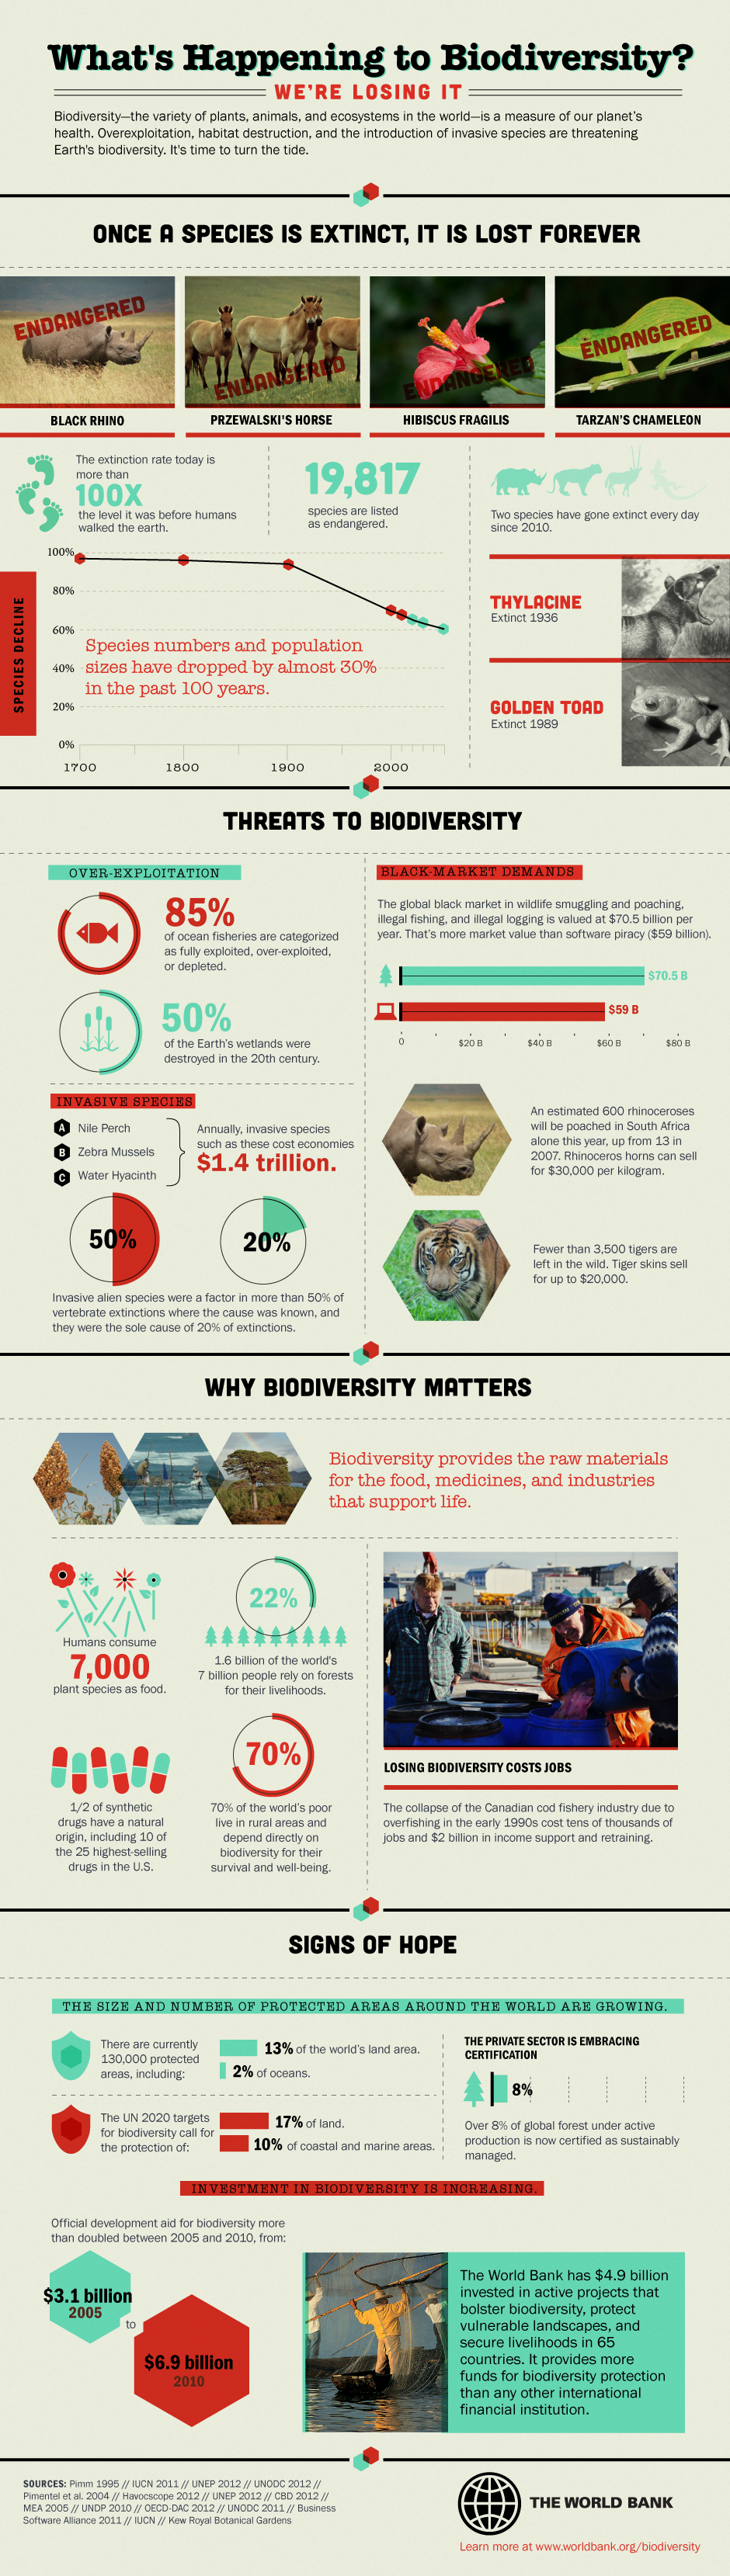 biodiversity and endangered species from el